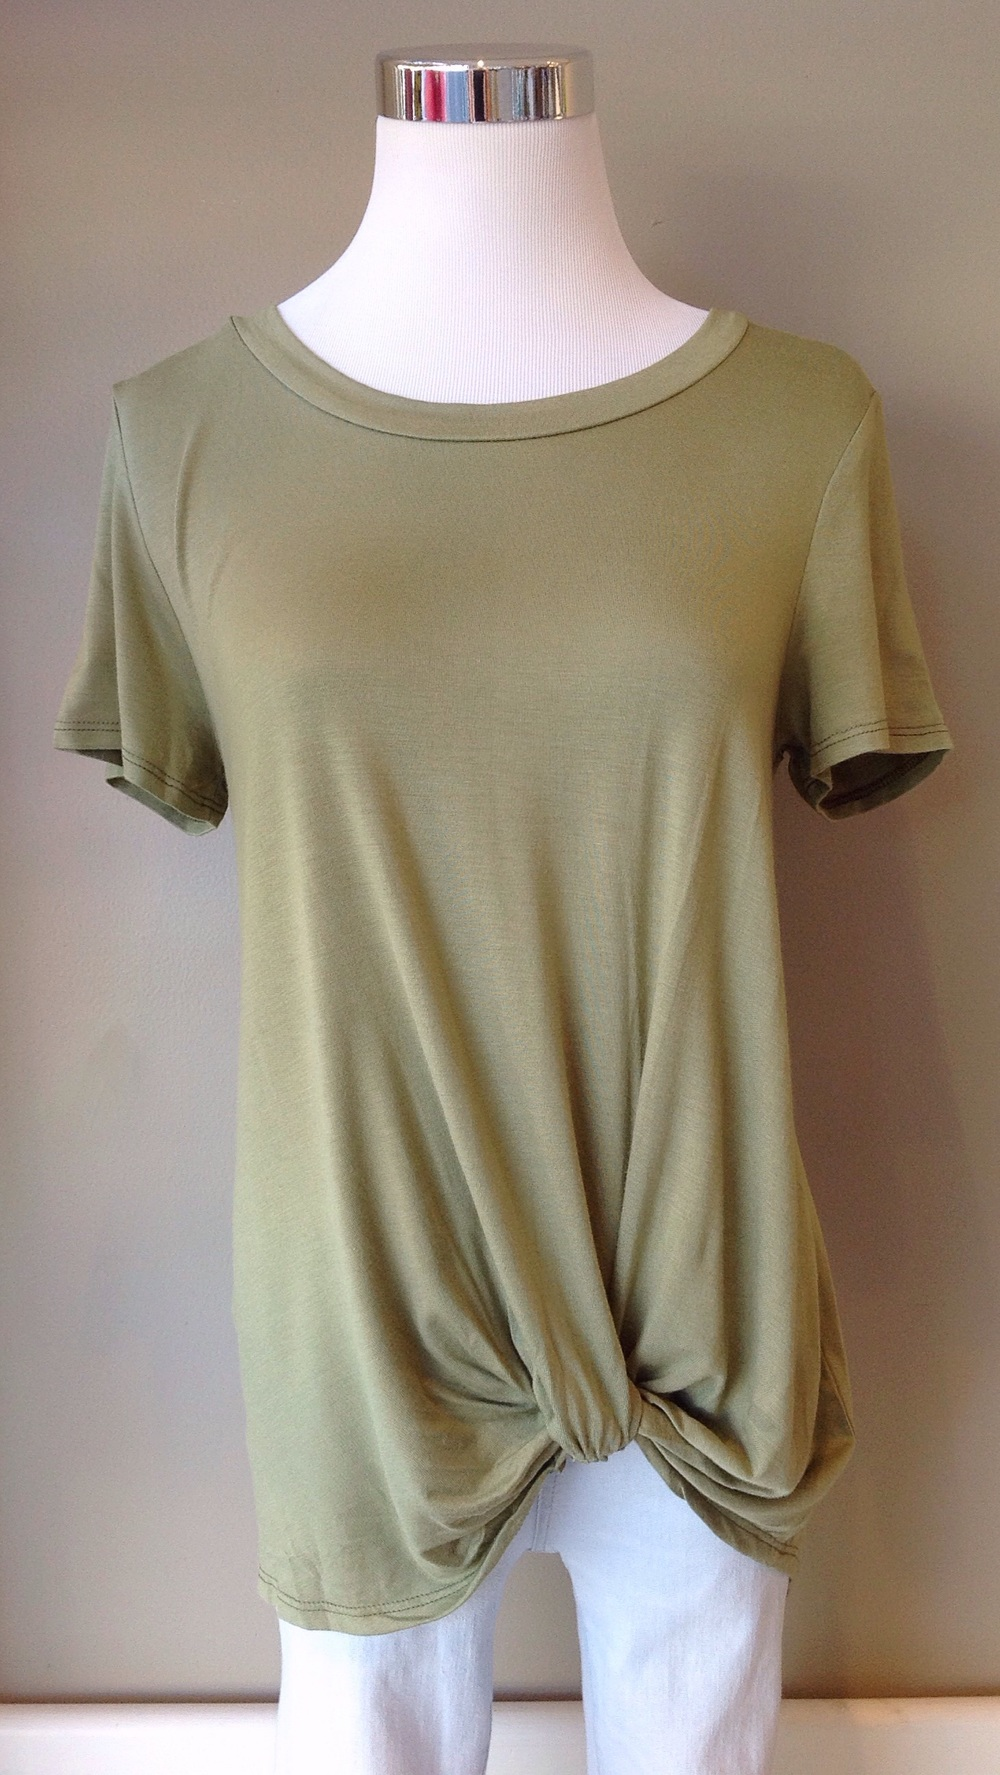 Also available in light olive.